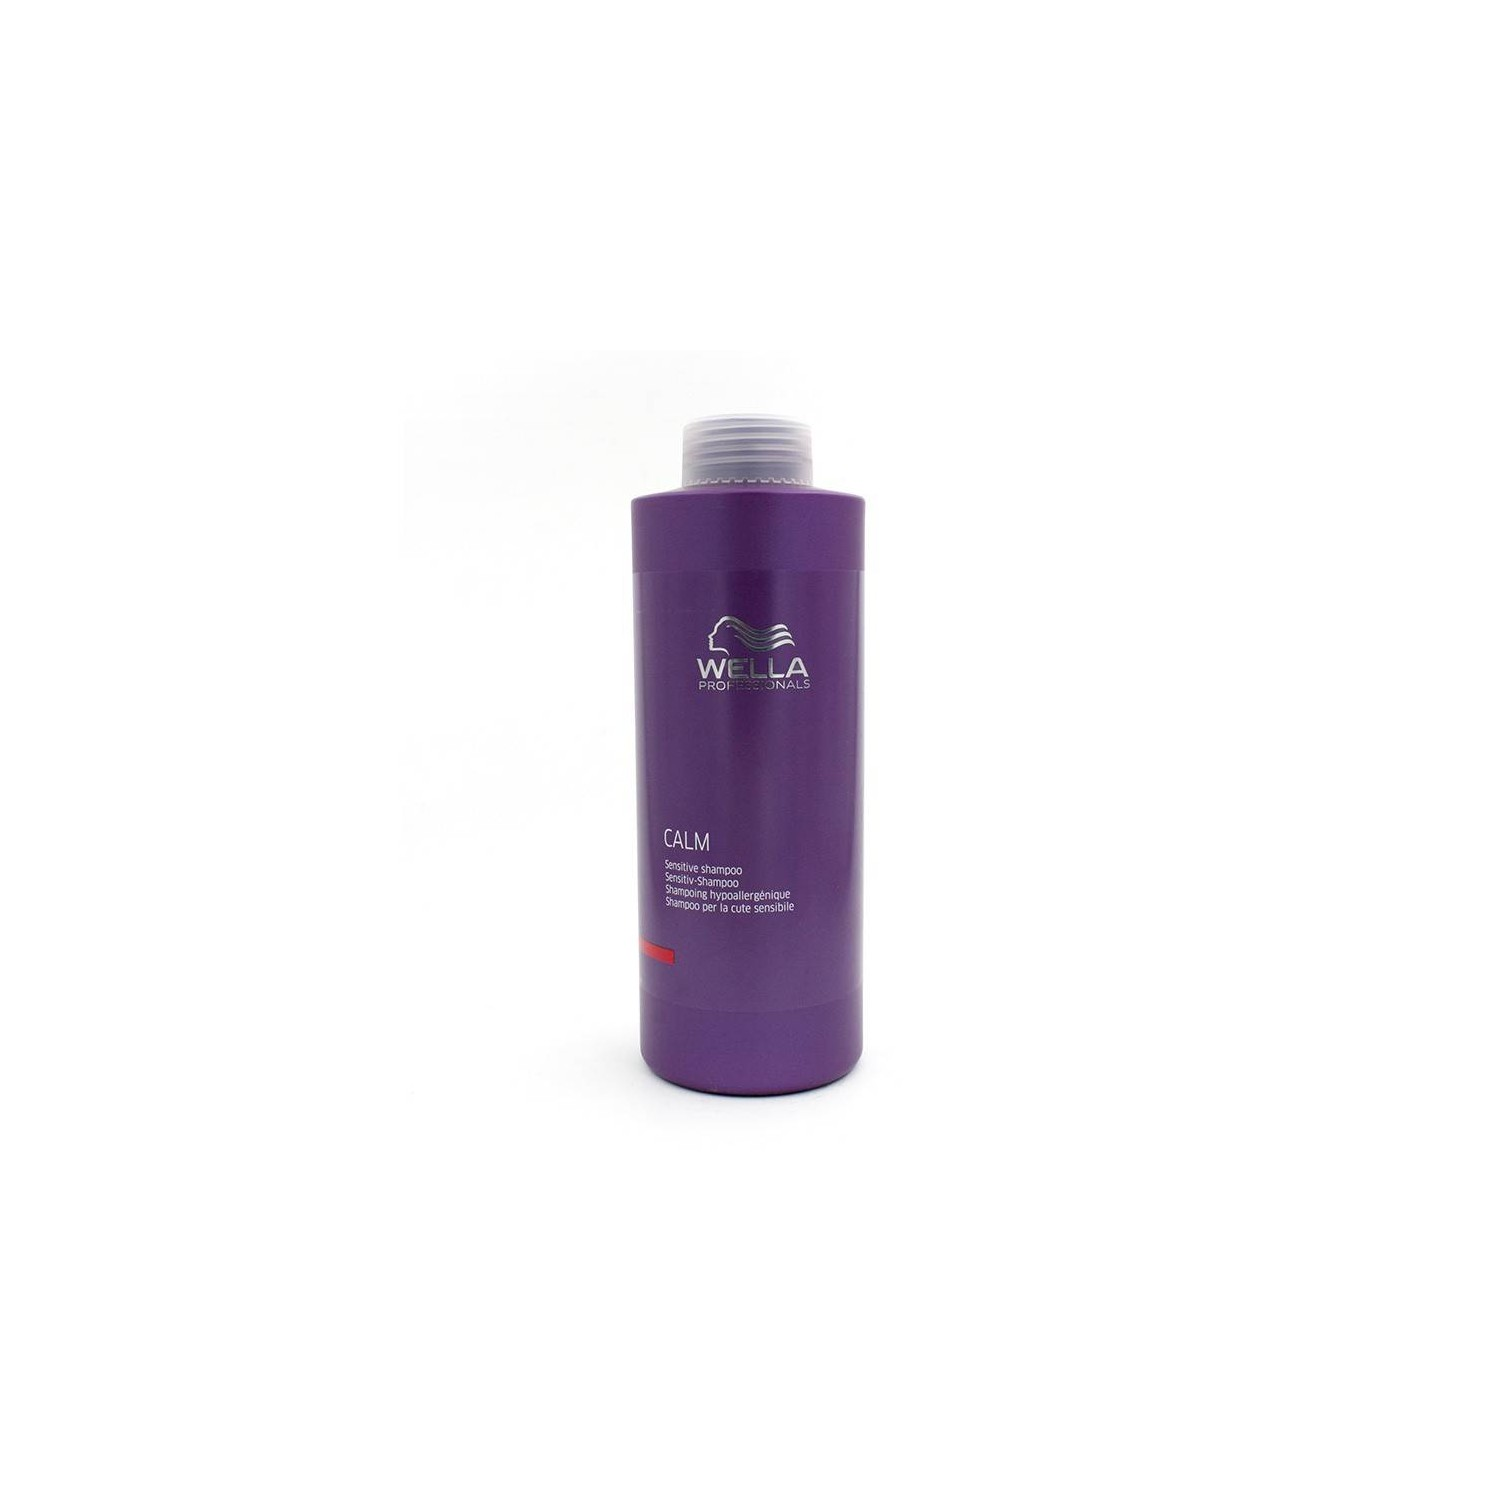 Wella Balance Calm Champú 1000 Ml